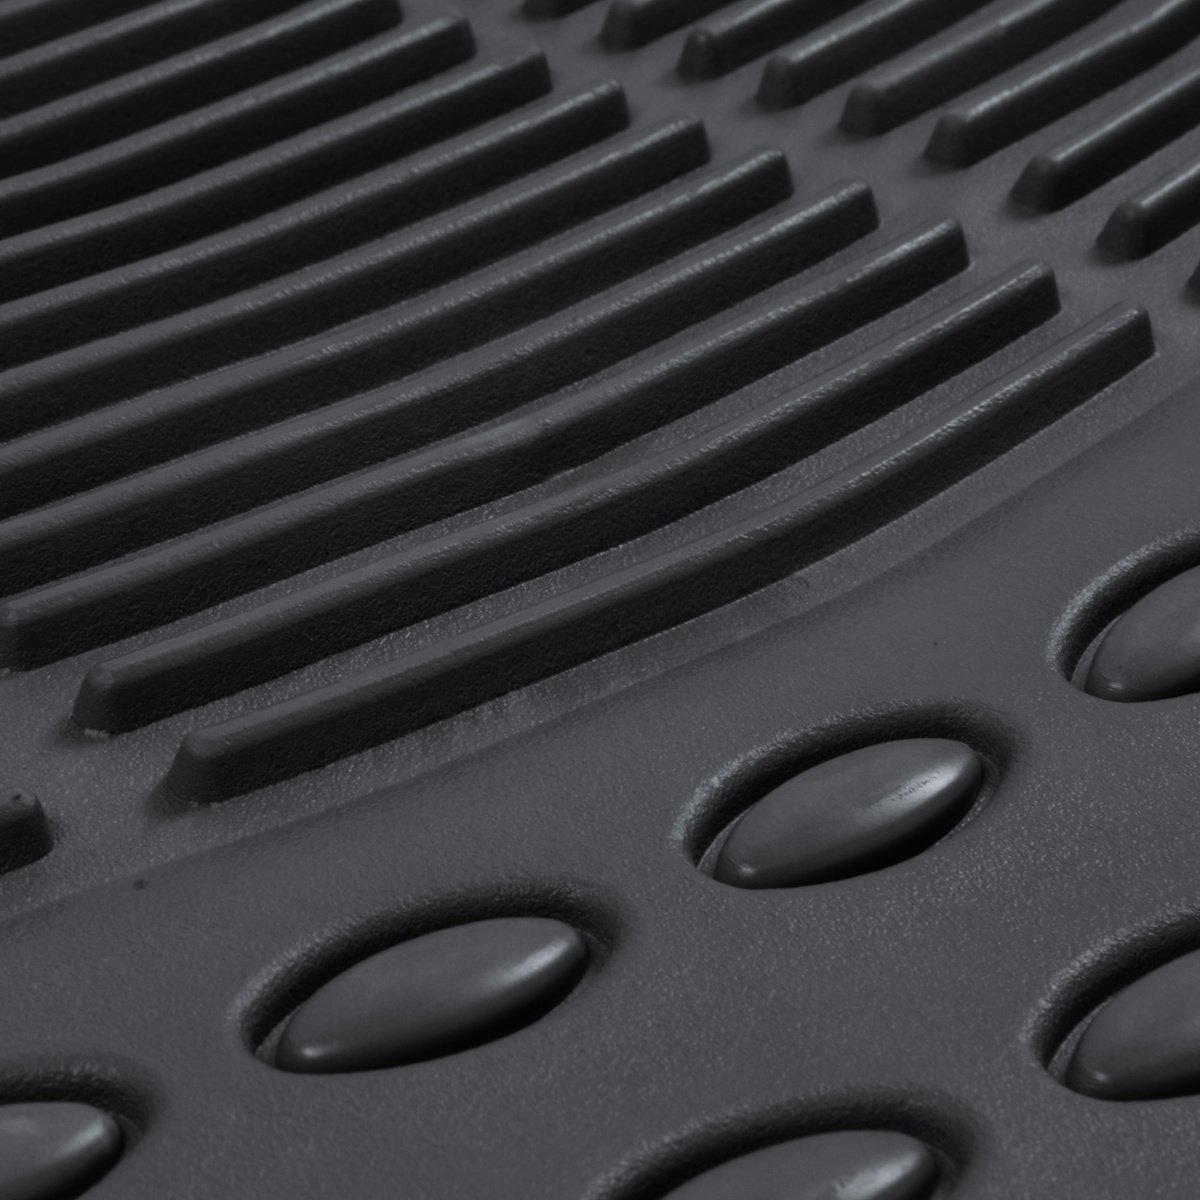 Black BDK Car SUV and Van Floor Rubber Mats 3 Rows 4 Pieces Heavy Duty All Weather Protection